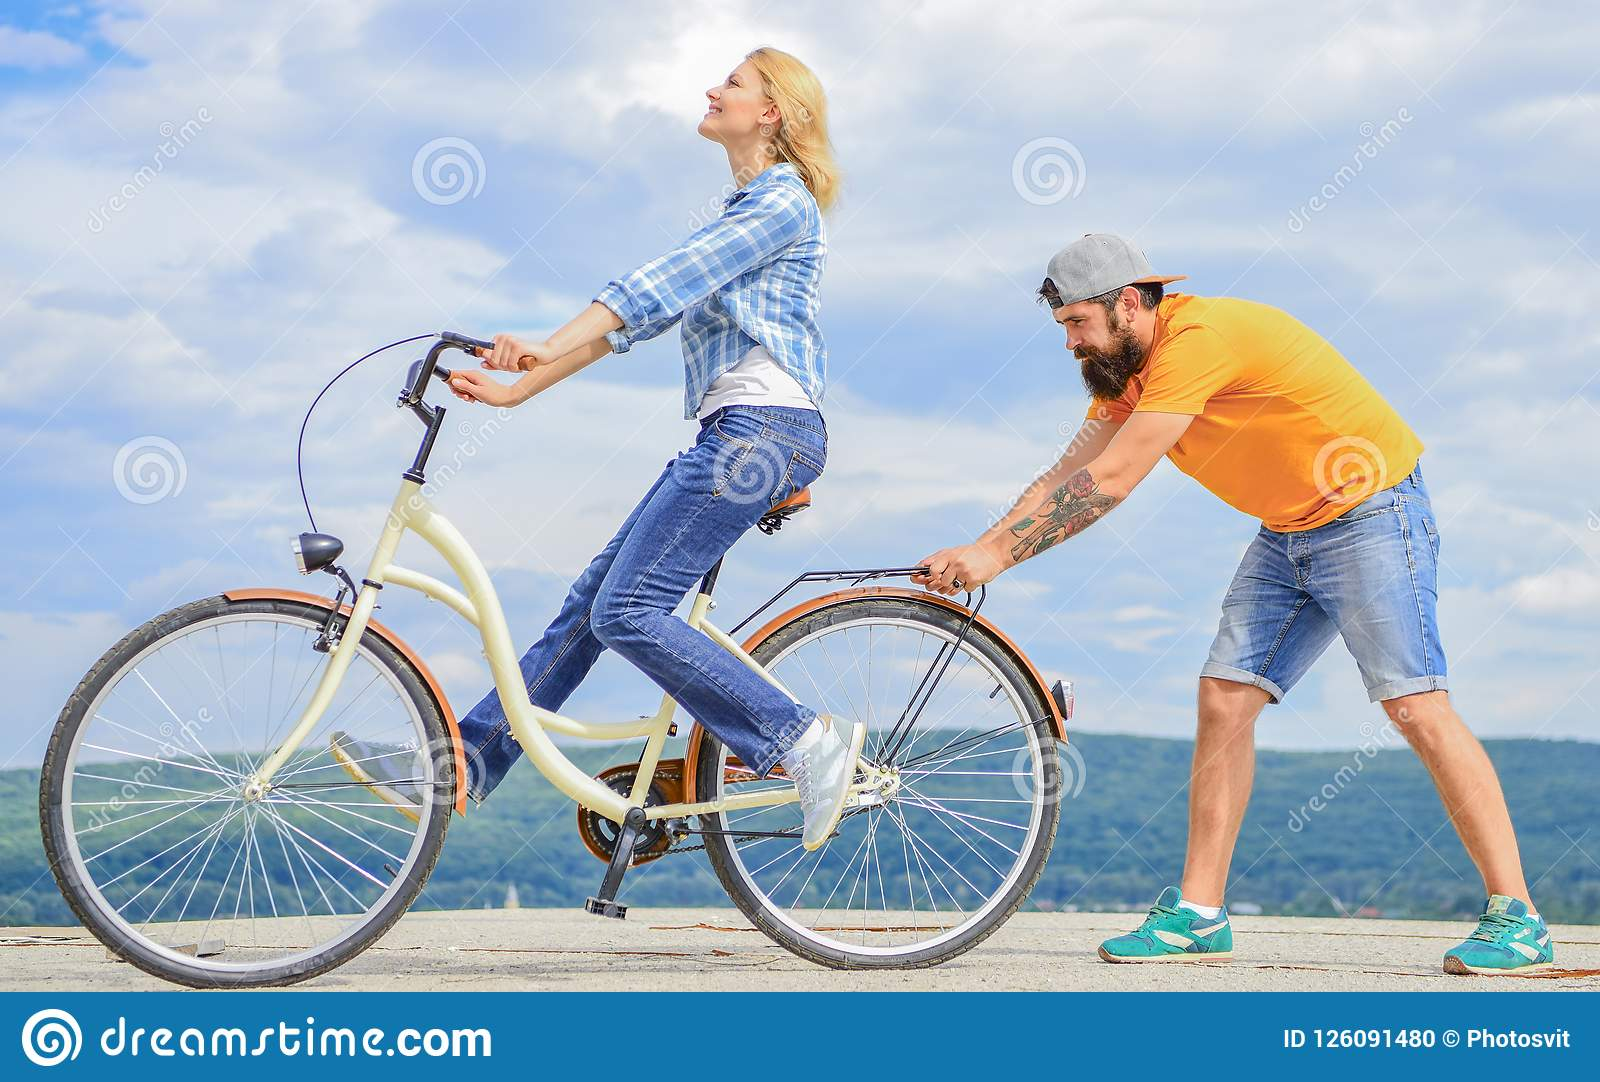 How to learn to ride bike as an adult. Girl cycling while boyfriend support her. Teach adult to ride bike. Man helps